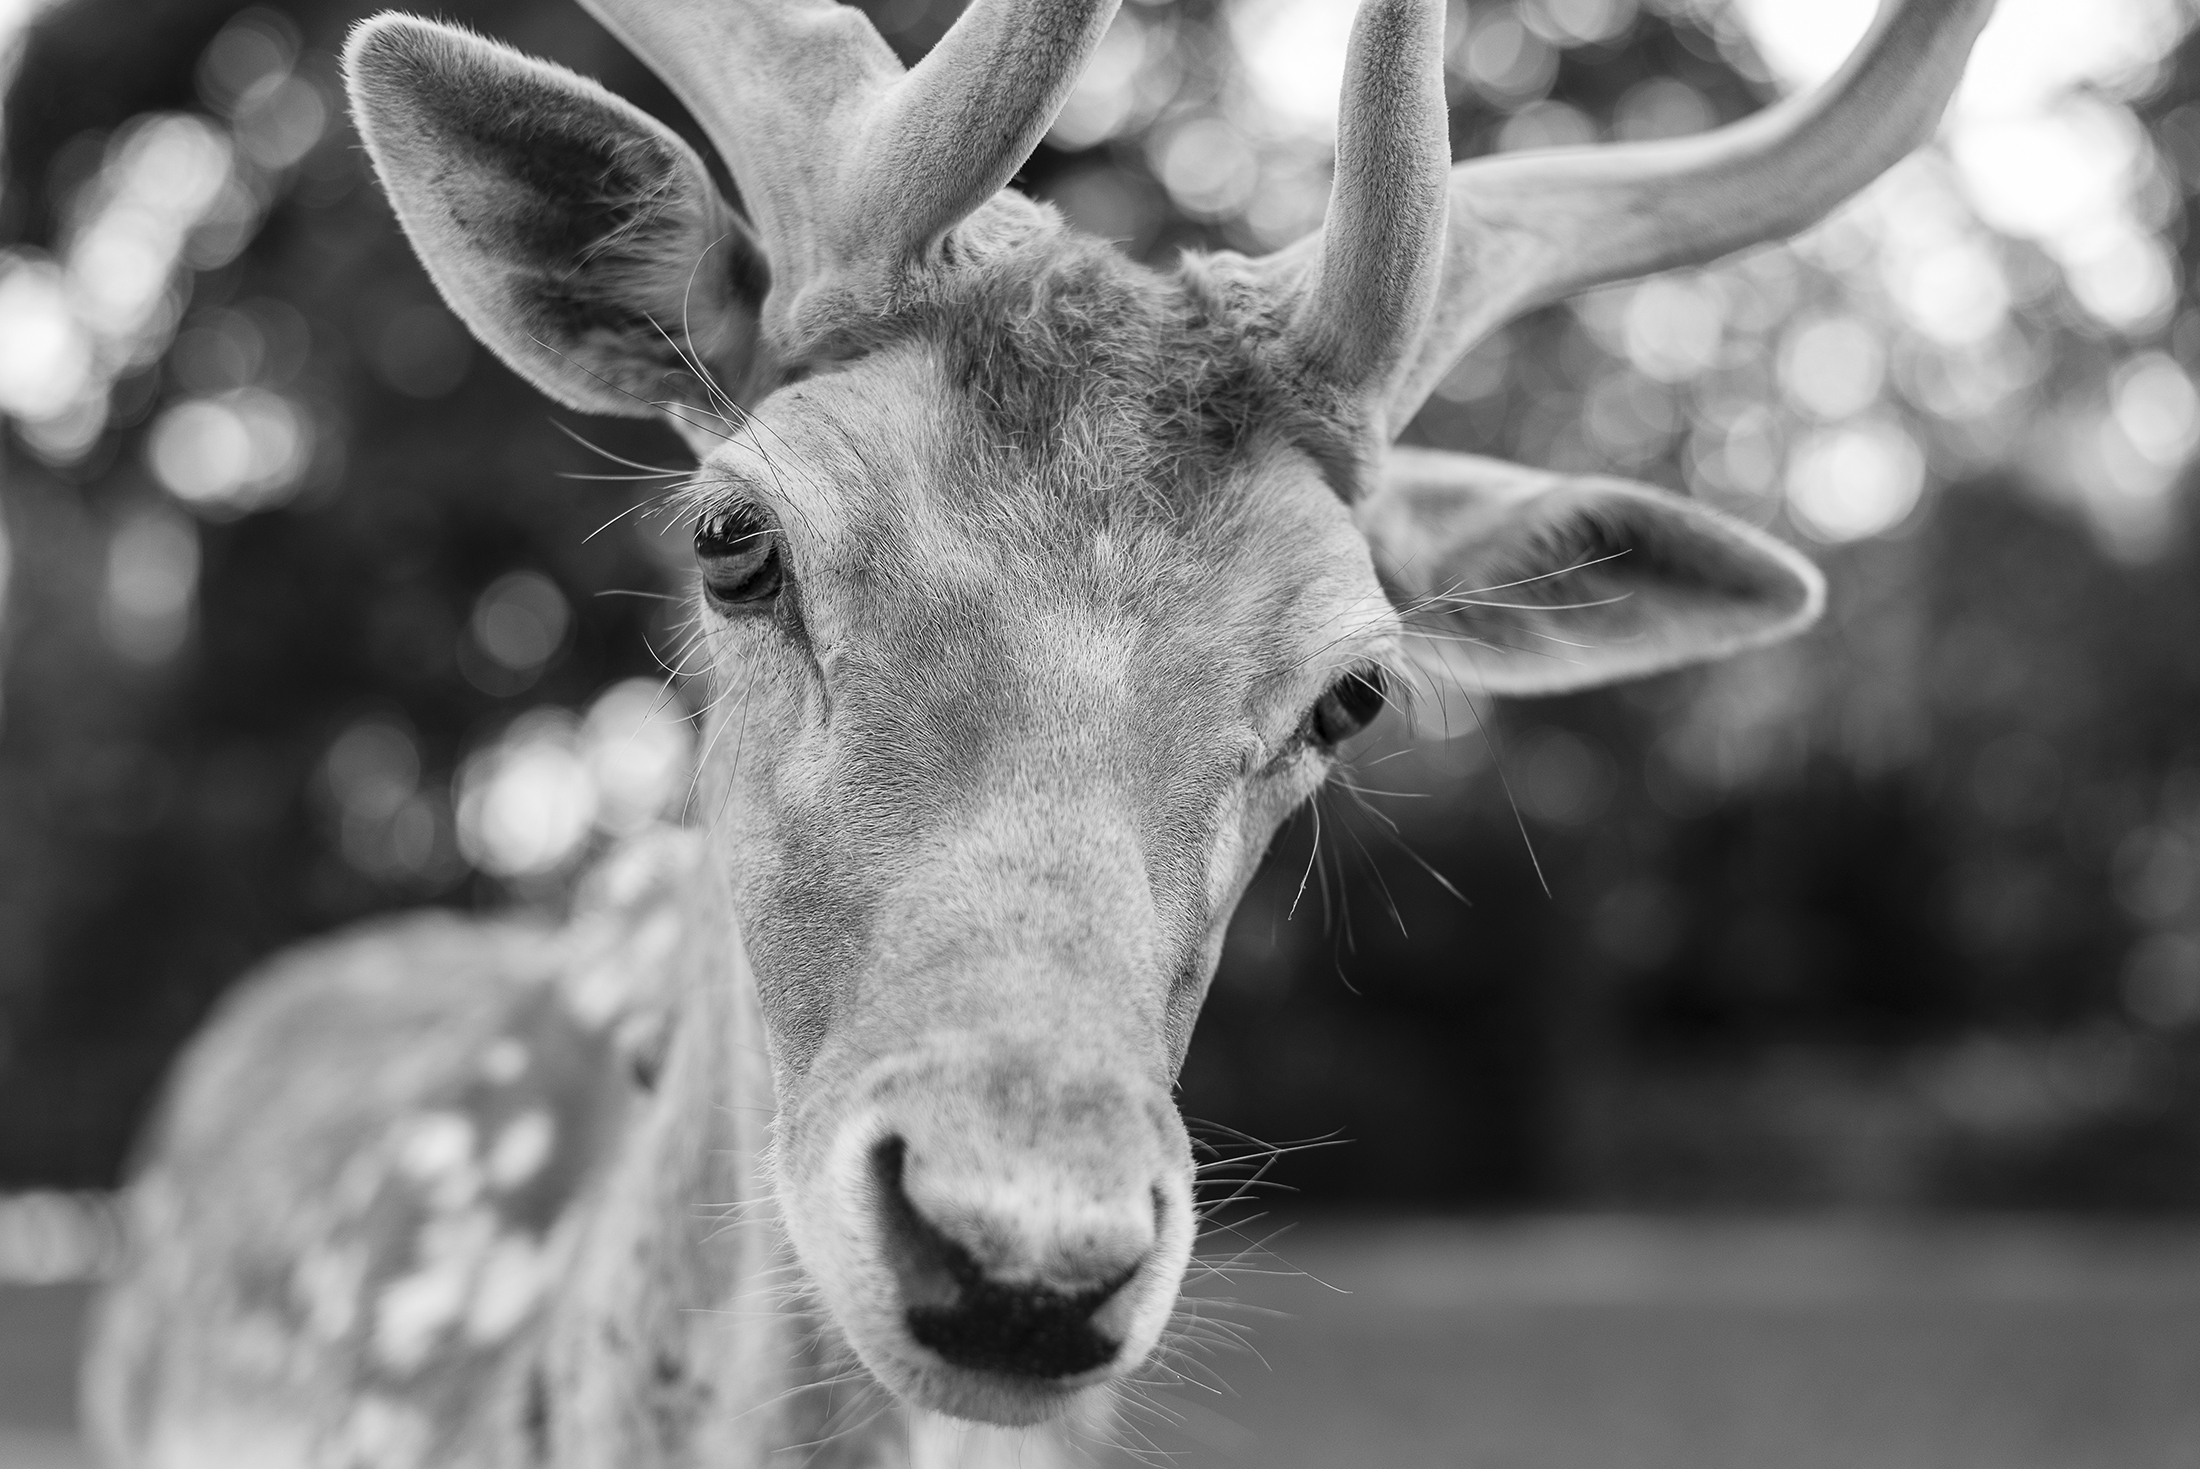 deer portrait close up - black and white photography